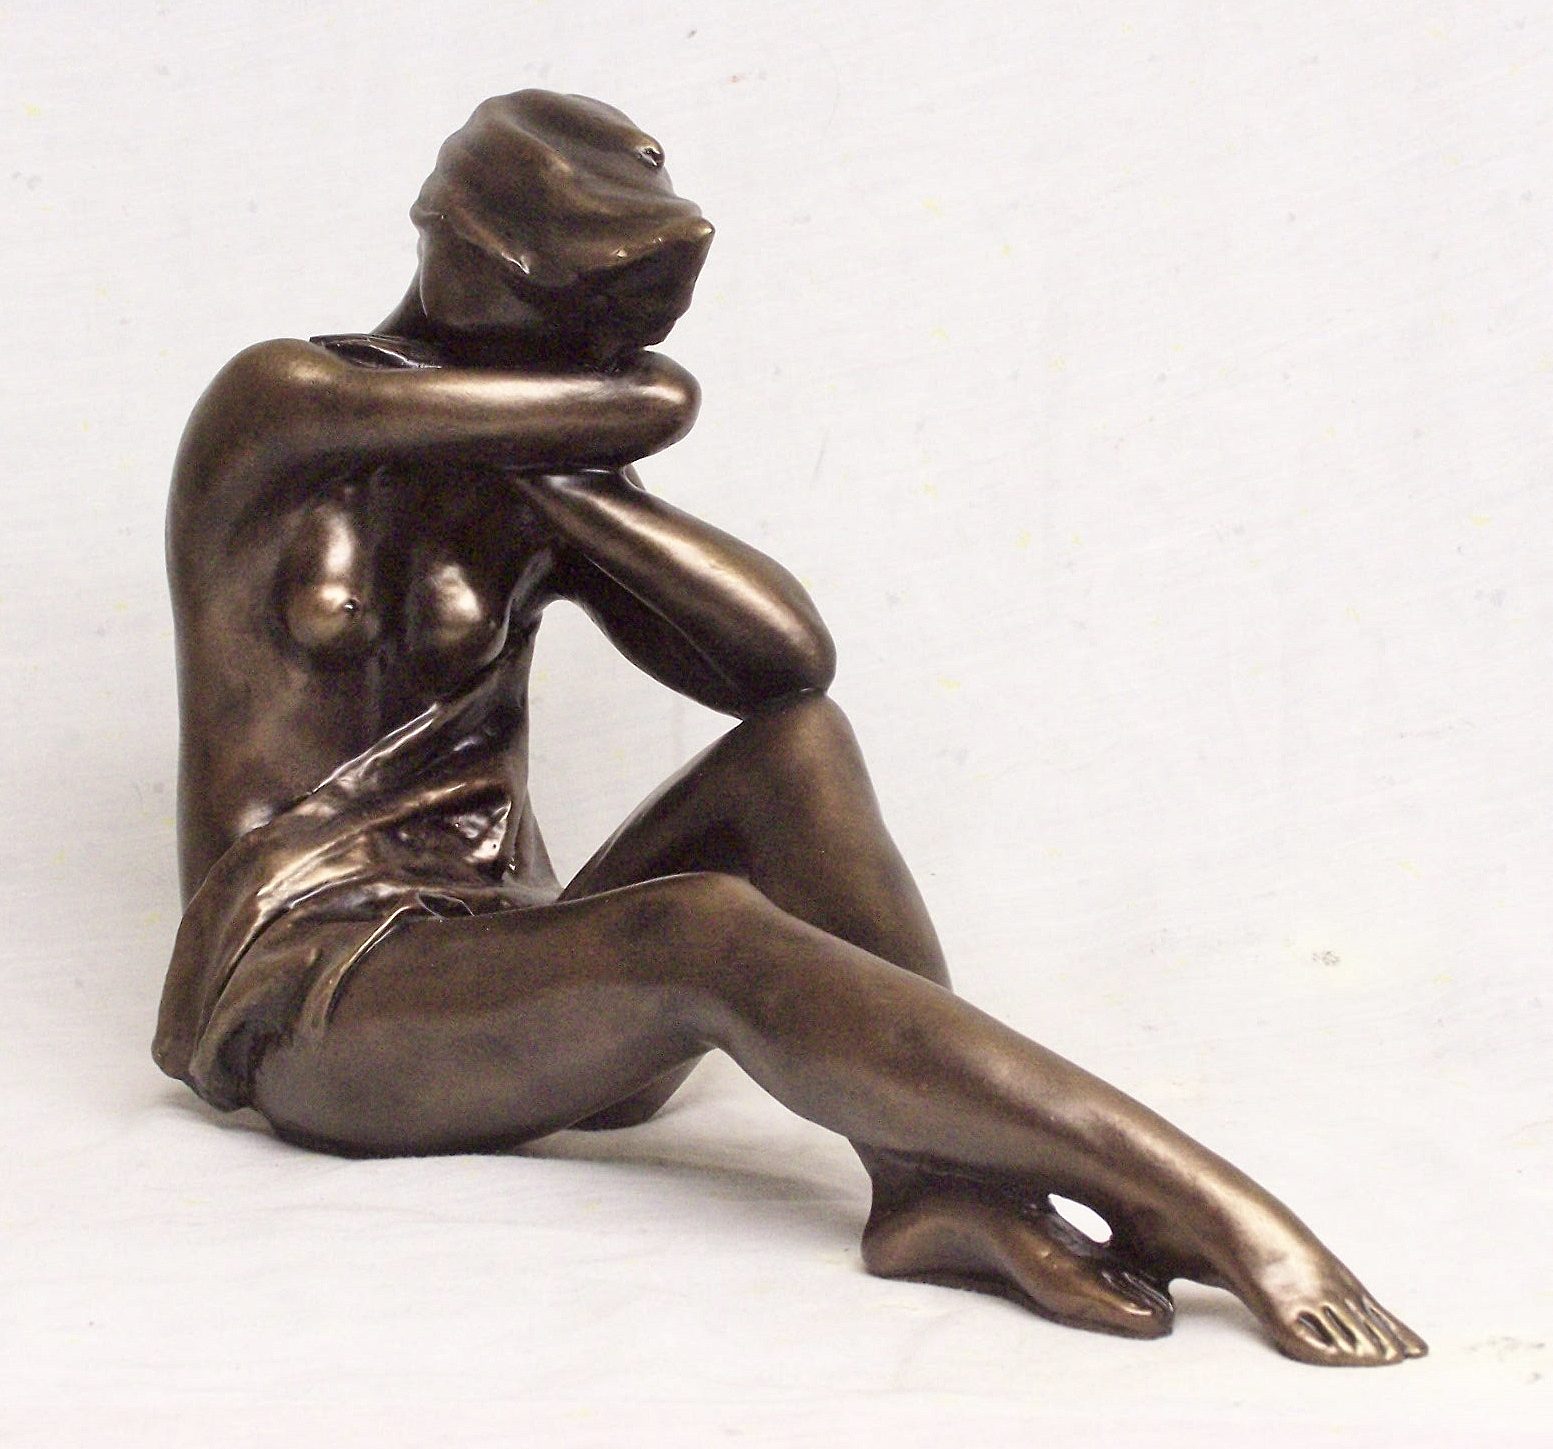 Sculpture featuring a woman seated on floor with hair in the wind